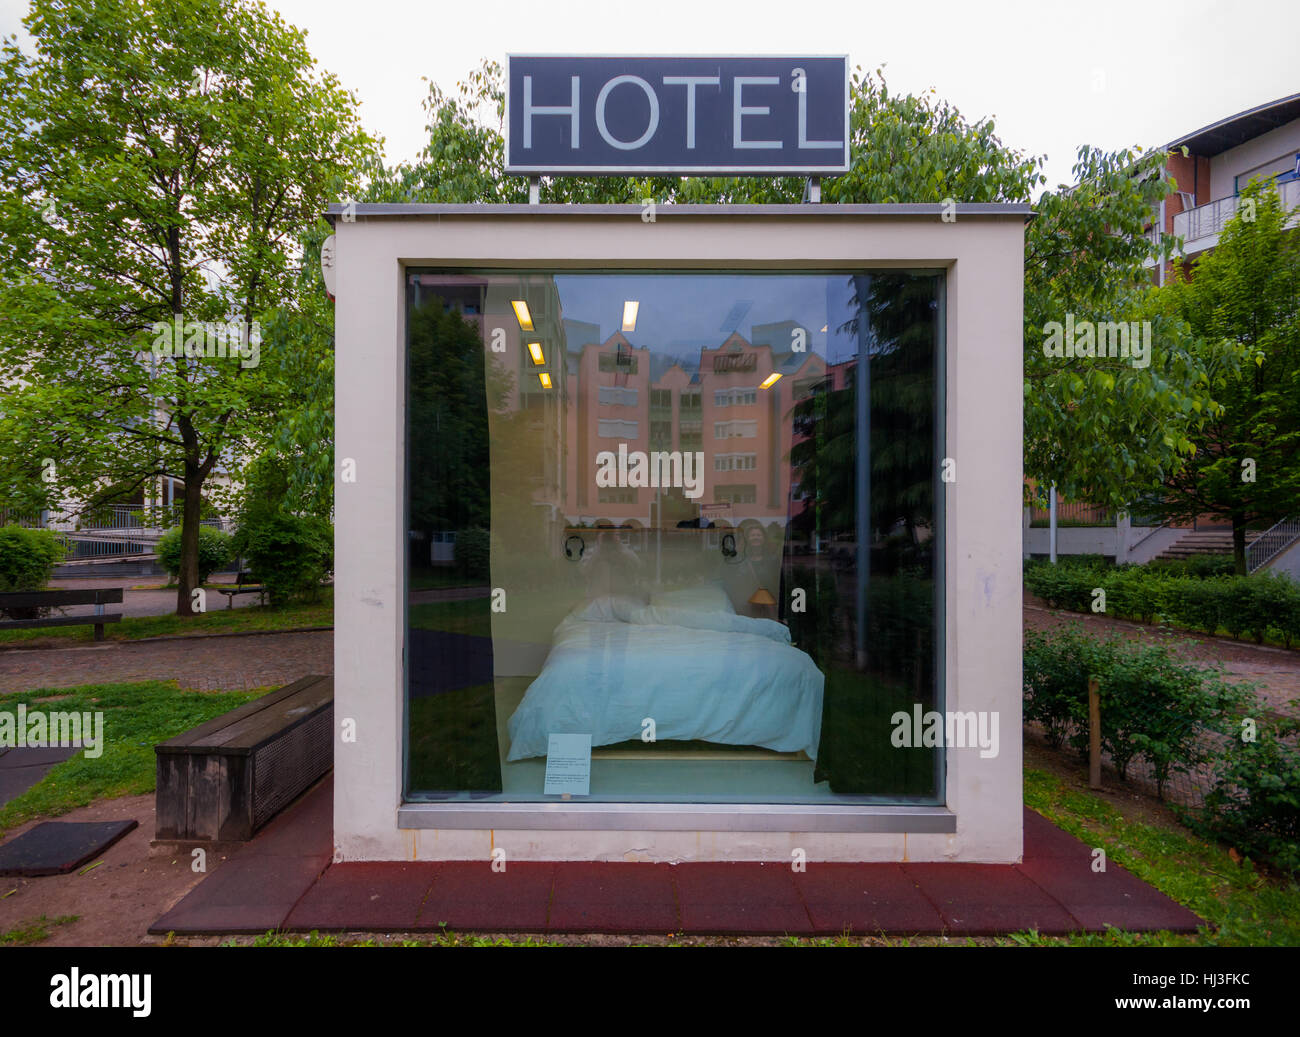 The Hotel Cubo, Bozen, Italy, a temporary art installation (2014) people could rent to sleep into, at the time it - Stock Image